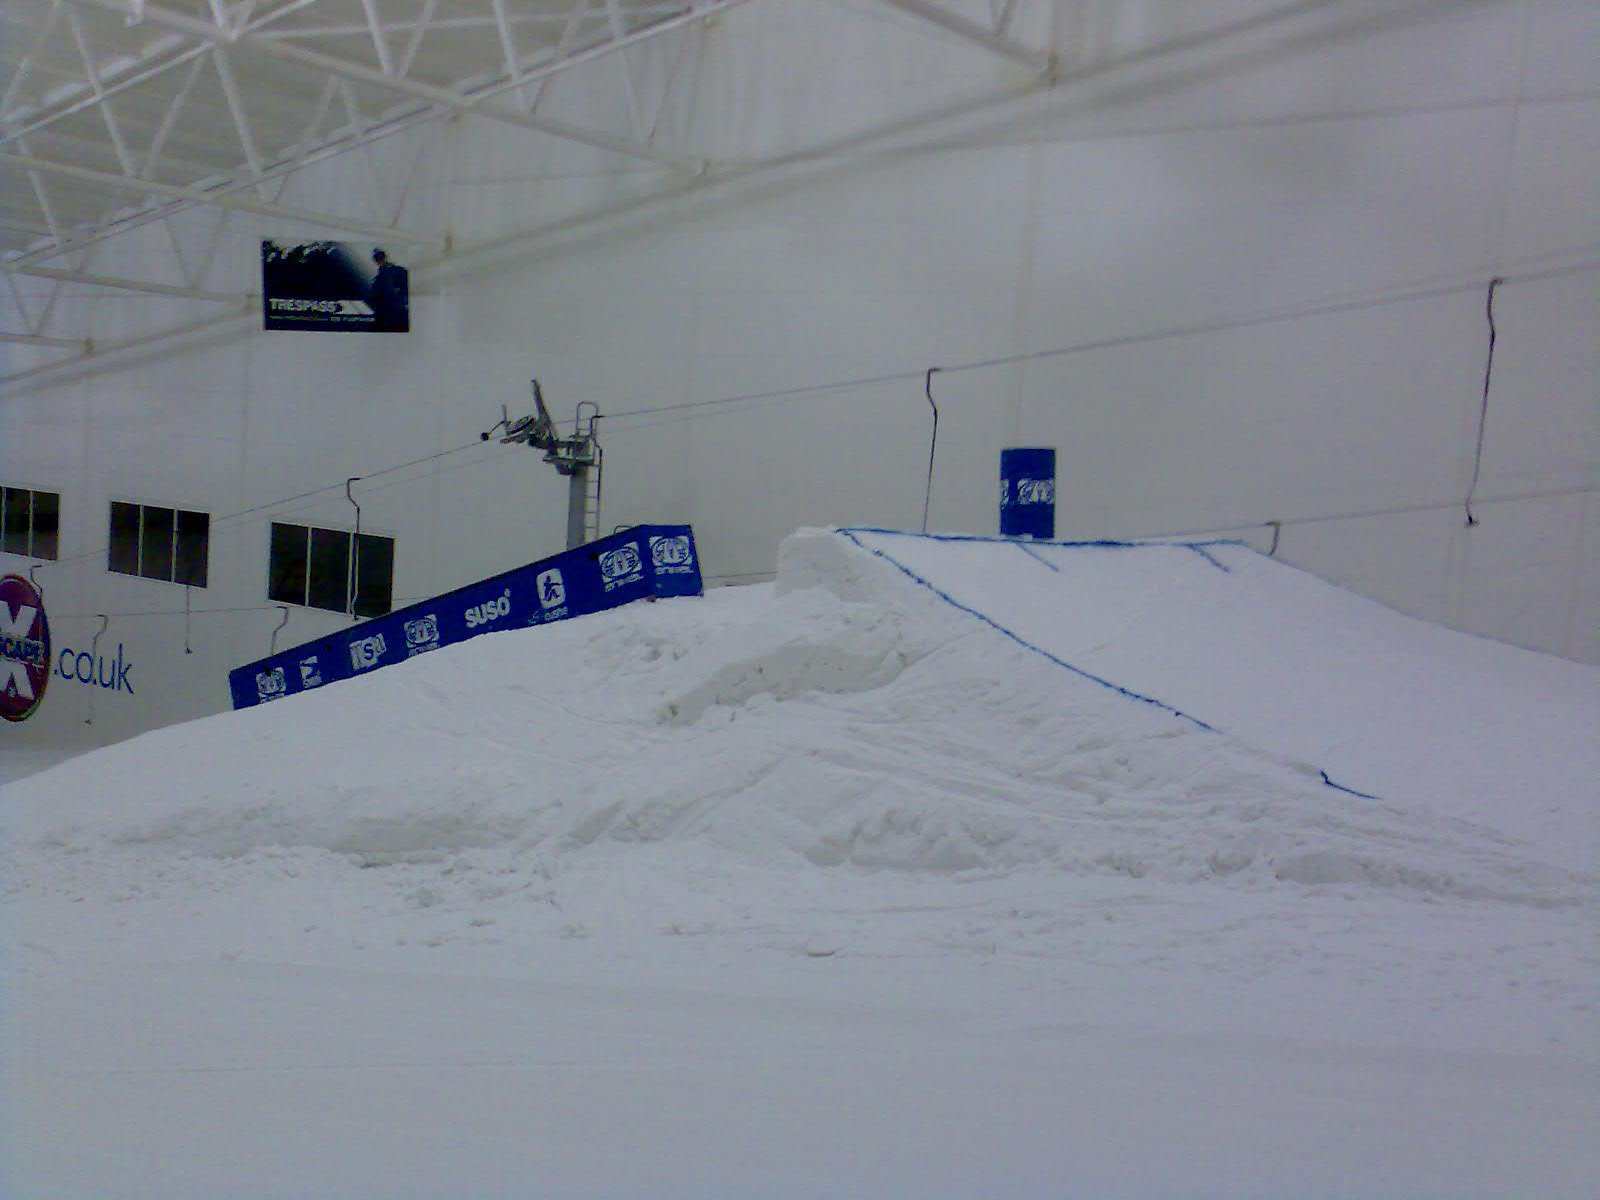 British Snow Tour - Slopestyle